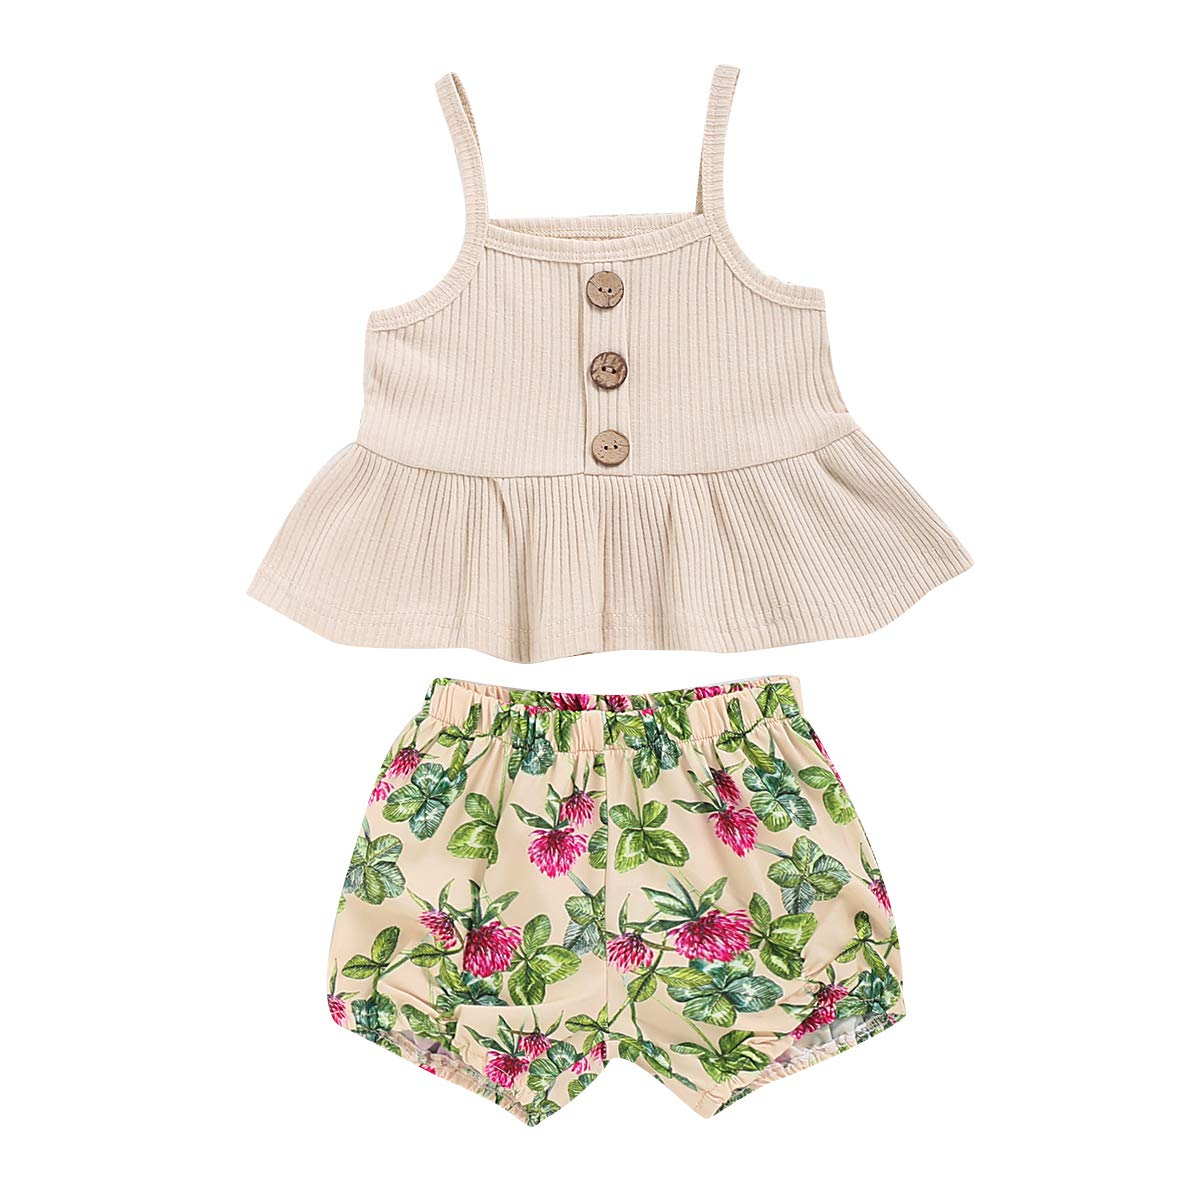 bilison Toddler Baby Girl Clothes Sleeveless Ruffle Tops Floral Pants Baby Girl Summer Outfits Set